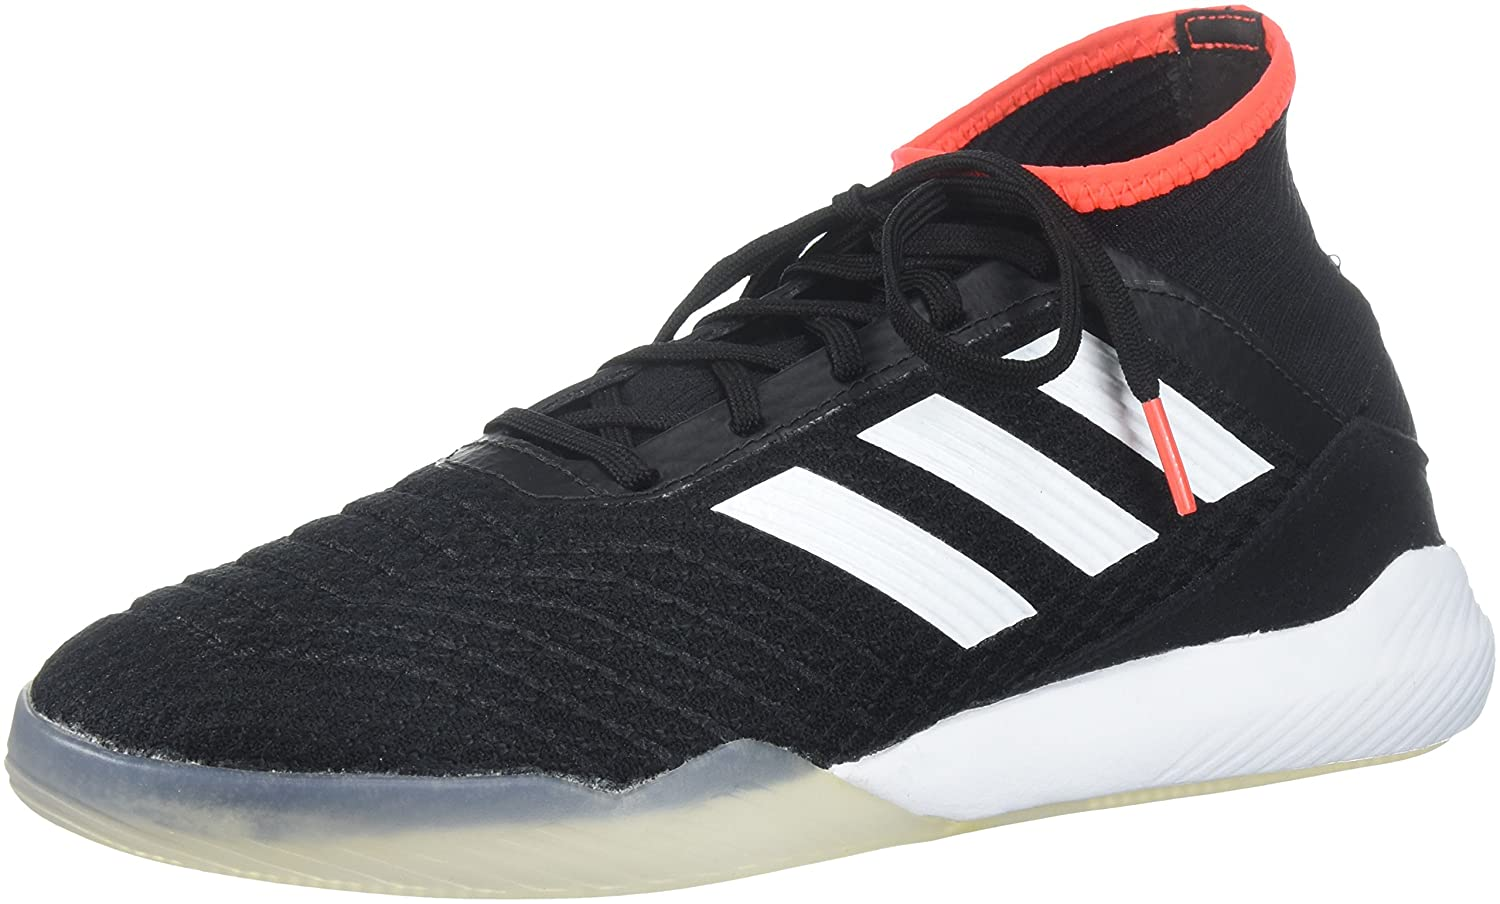 adidas Men's Football Predator Tango 18.3 TR Shoes CP9269